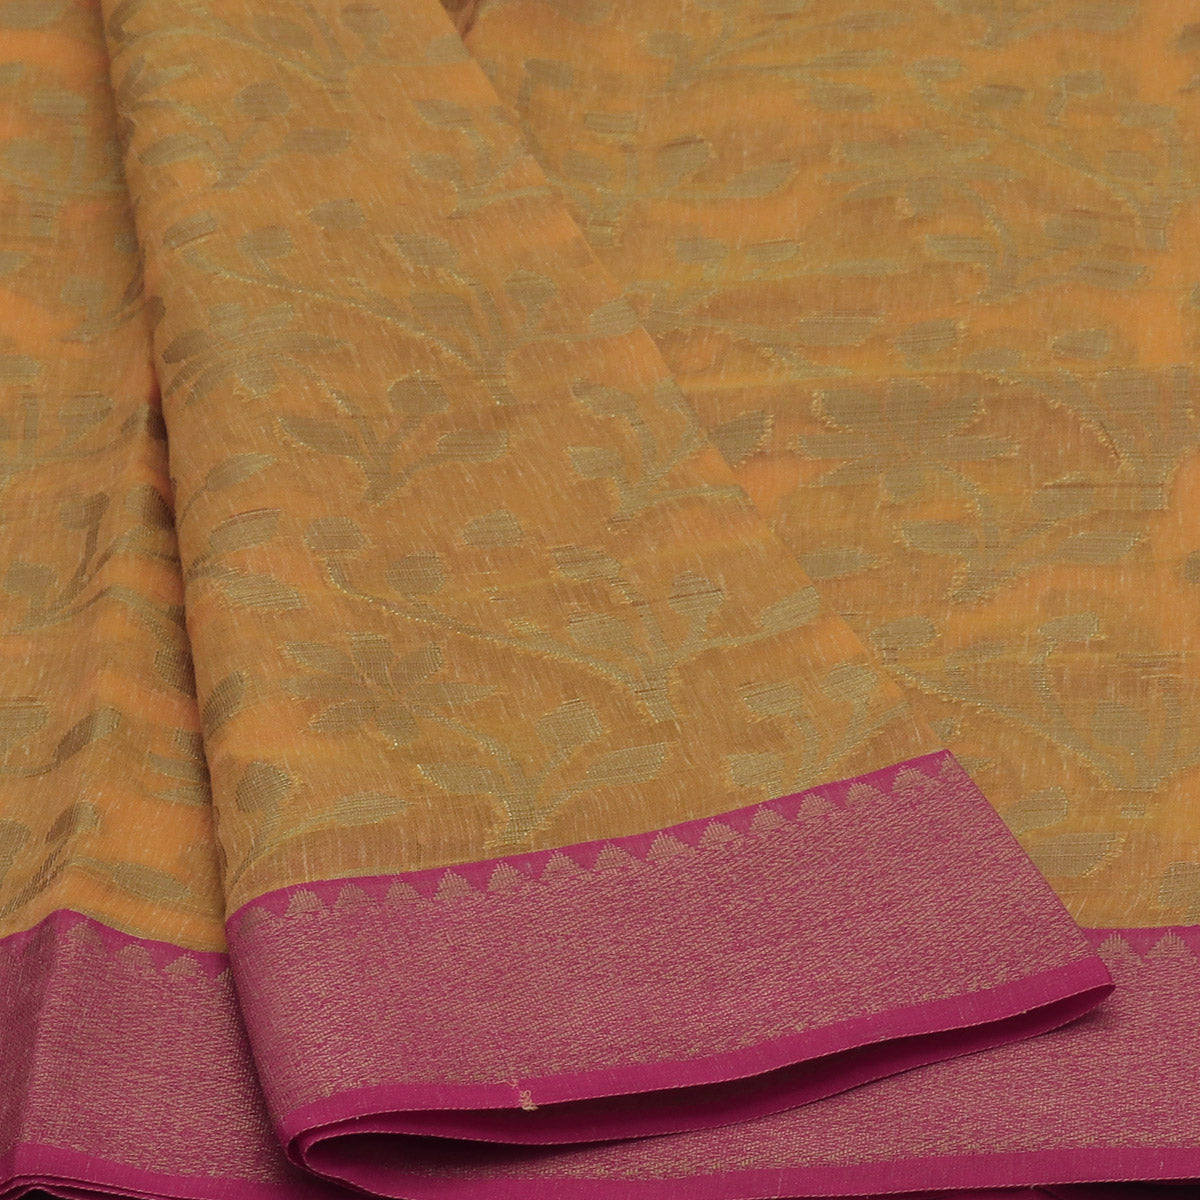 Banarasi Organza Saree Light Orange shade  and Pink with Flower Design and Temple Border